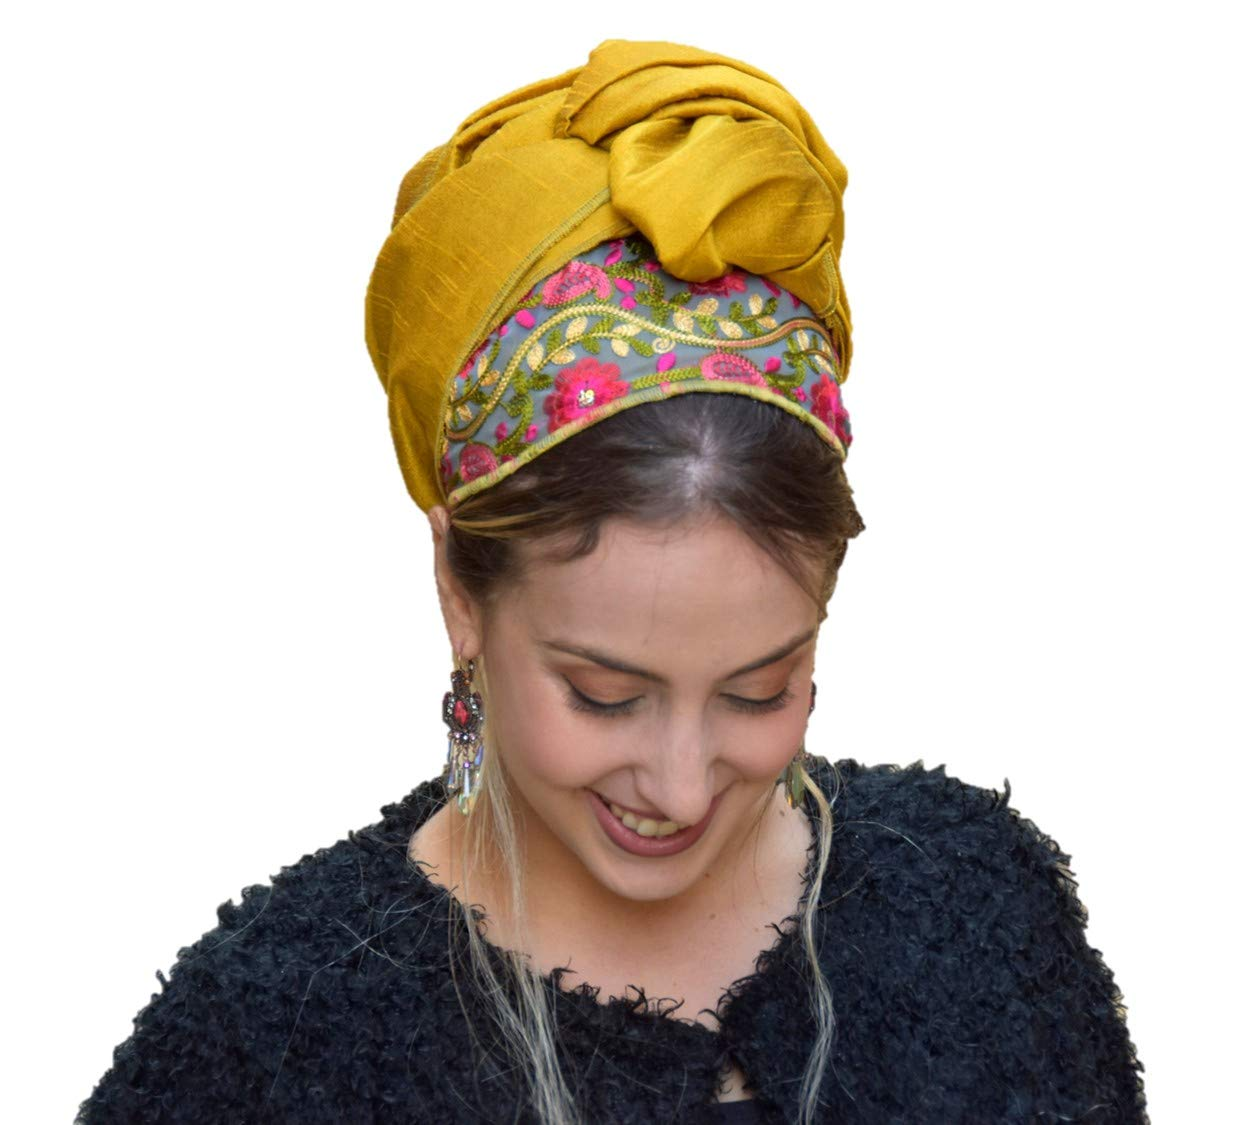 Sara Attali Headscarf TICHEL, Hair Snood, Head Scarf, Head Covering, Jewish headcovering, Scarf, One Size Golden Oasis